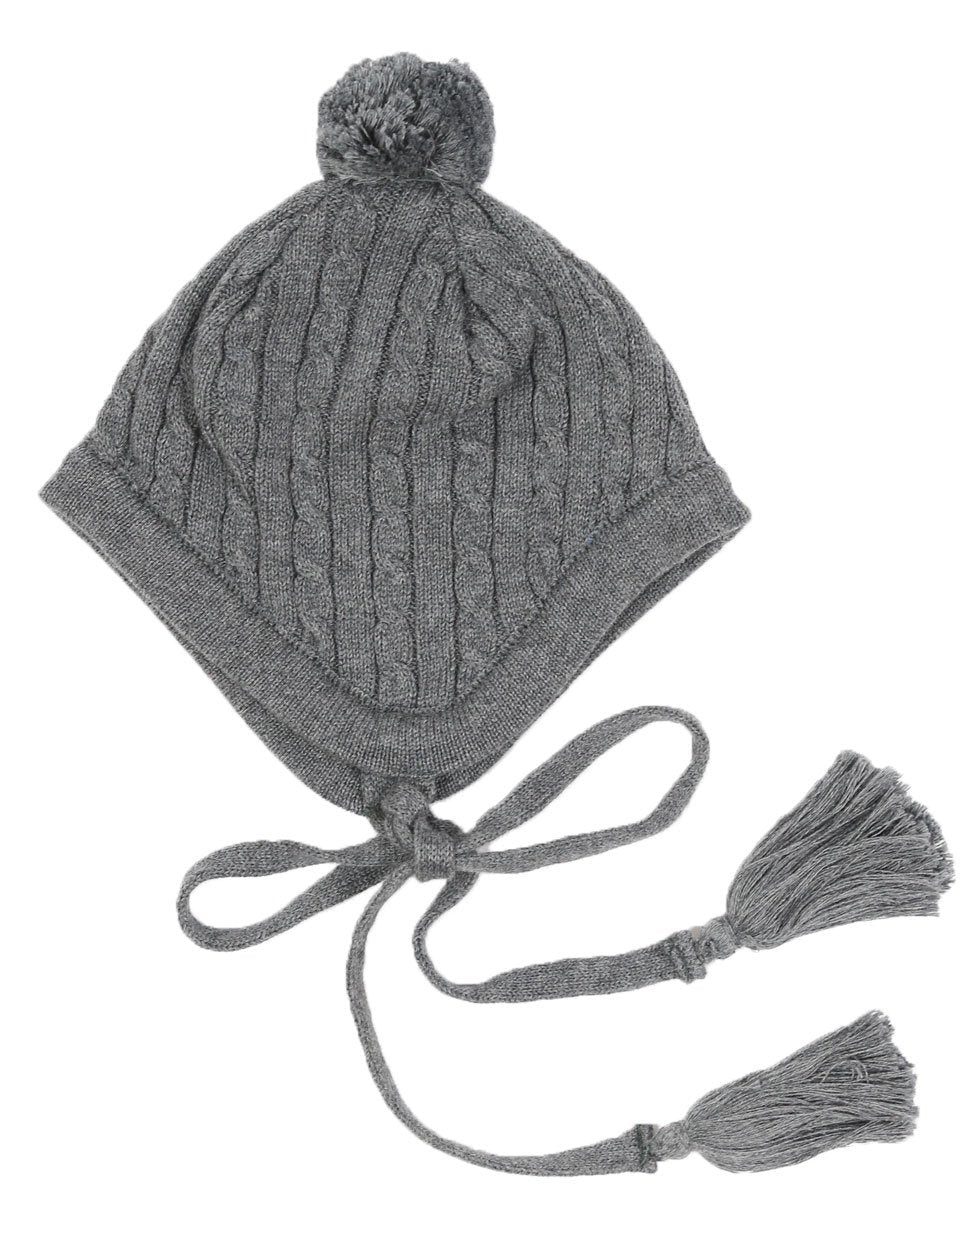 KORANGO Baby Mr Fox Cable Knit Beanie